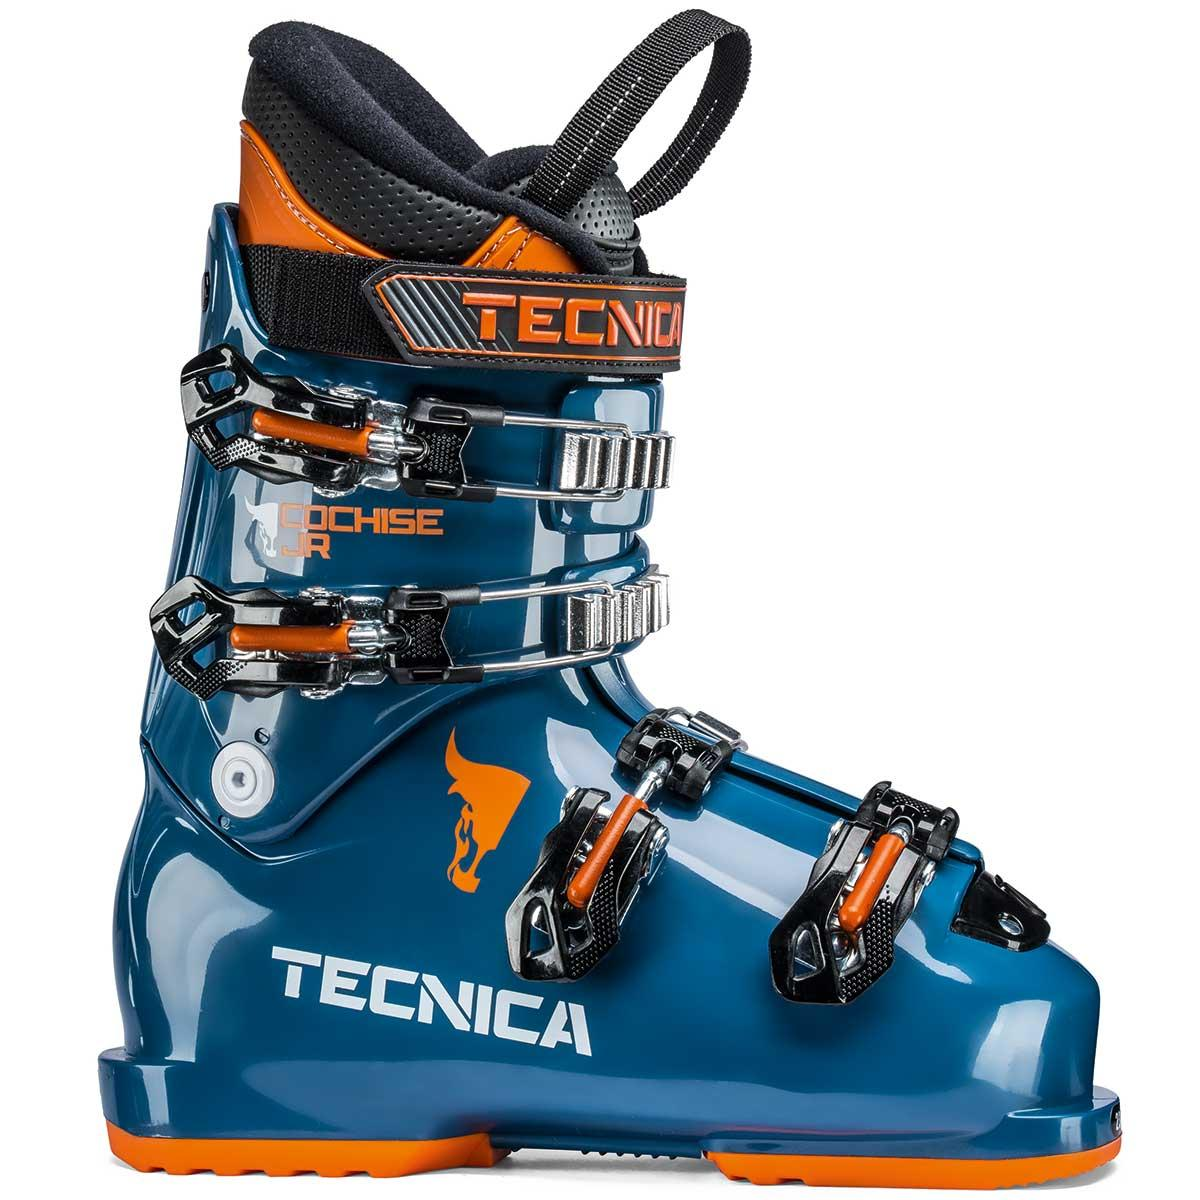 Tecnica Cochise Jr ski boot in dark blue process